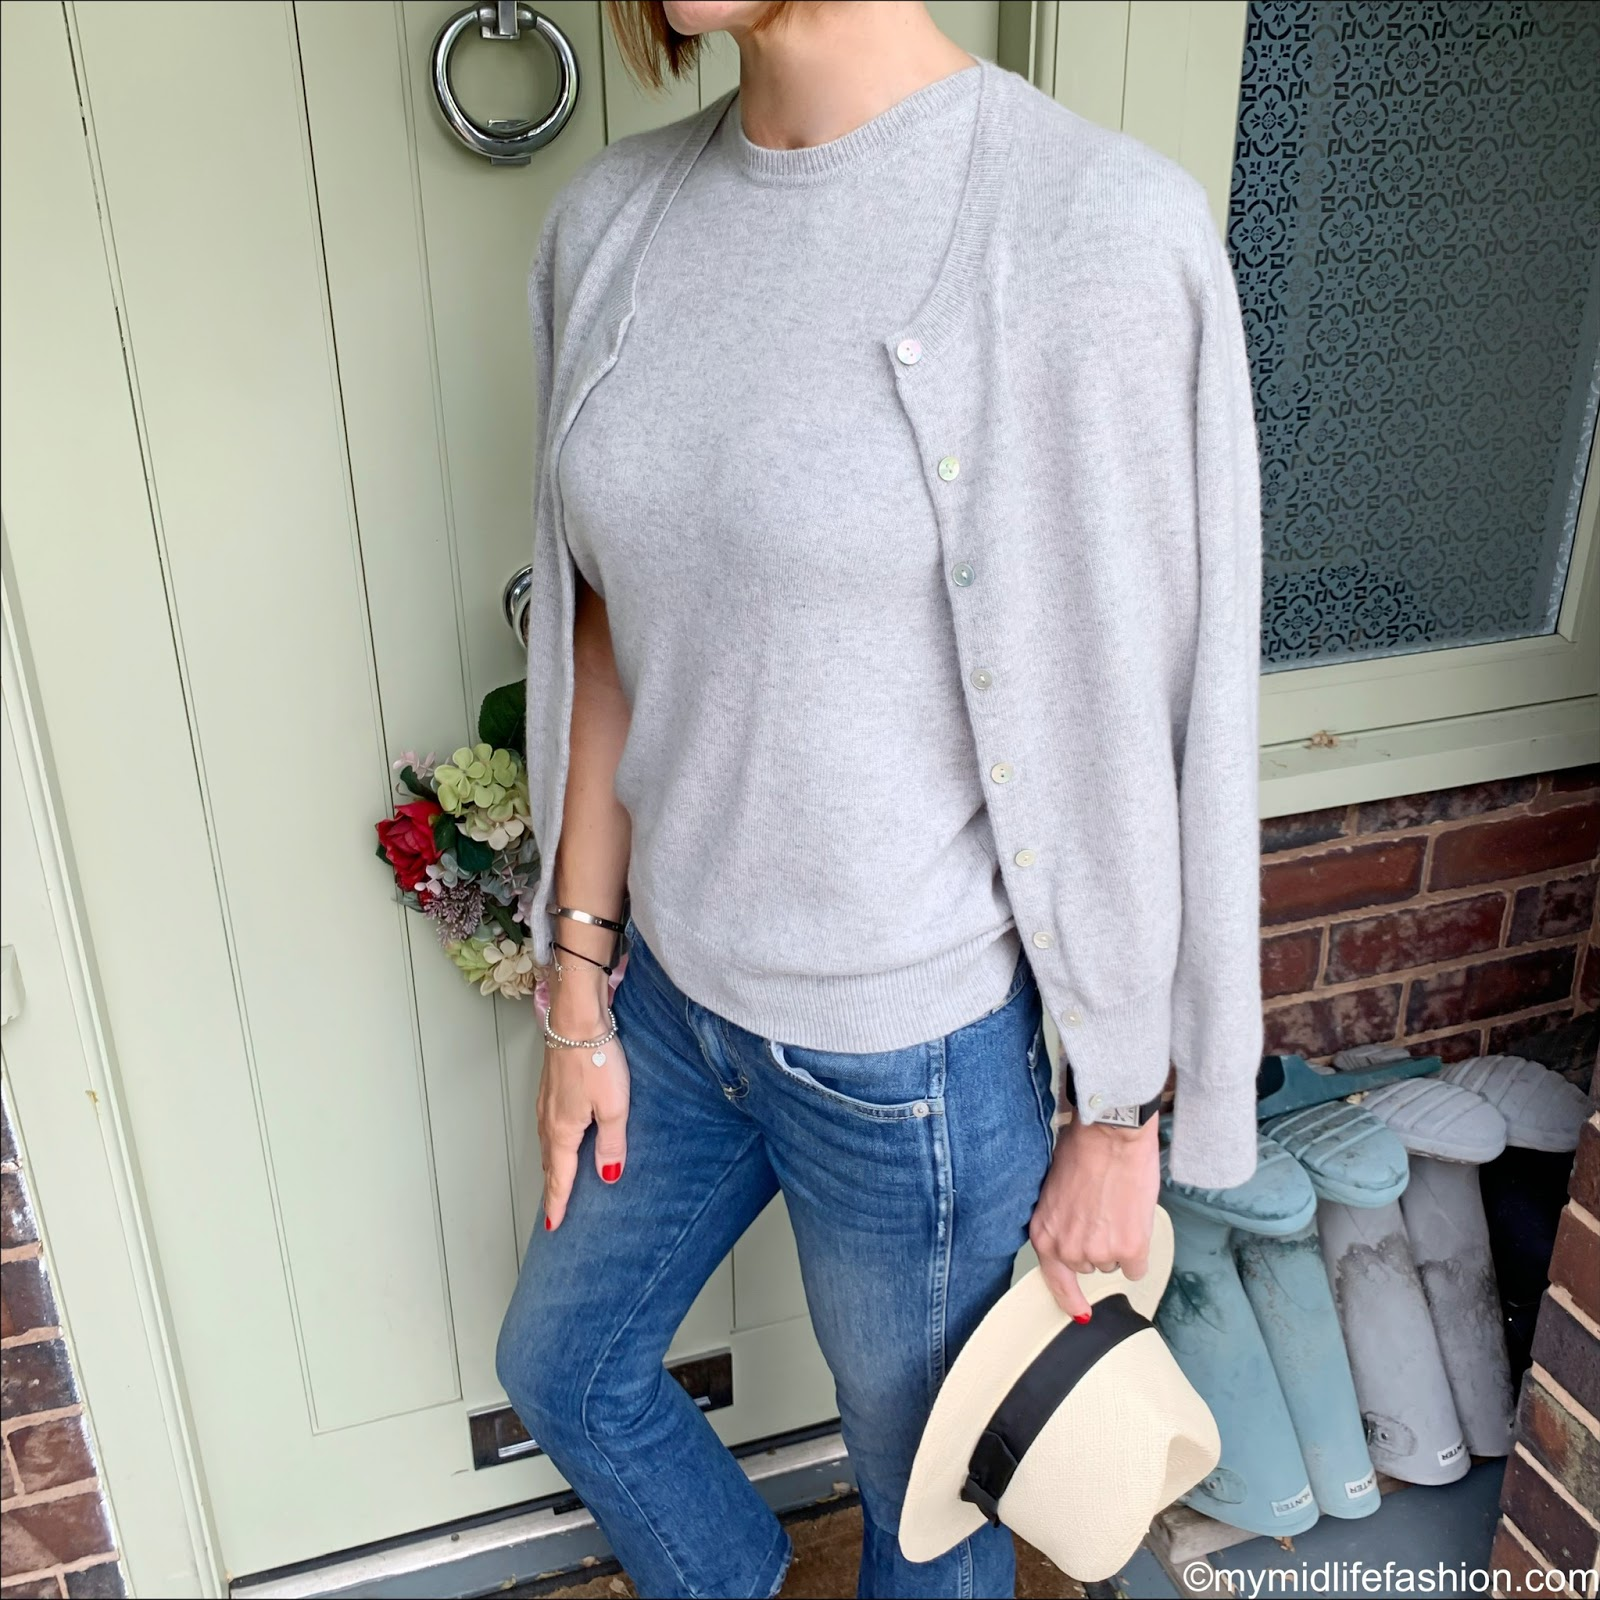 my midlife fashion, marks and Spencer luxury Panama hat, marks and Spencer pure cashmere button detail cardigan, marks and Spencer pure cashmere short sleeve crew neck jumper, j crew suede pointed tassel flats, j crew cropped kick flare jeans